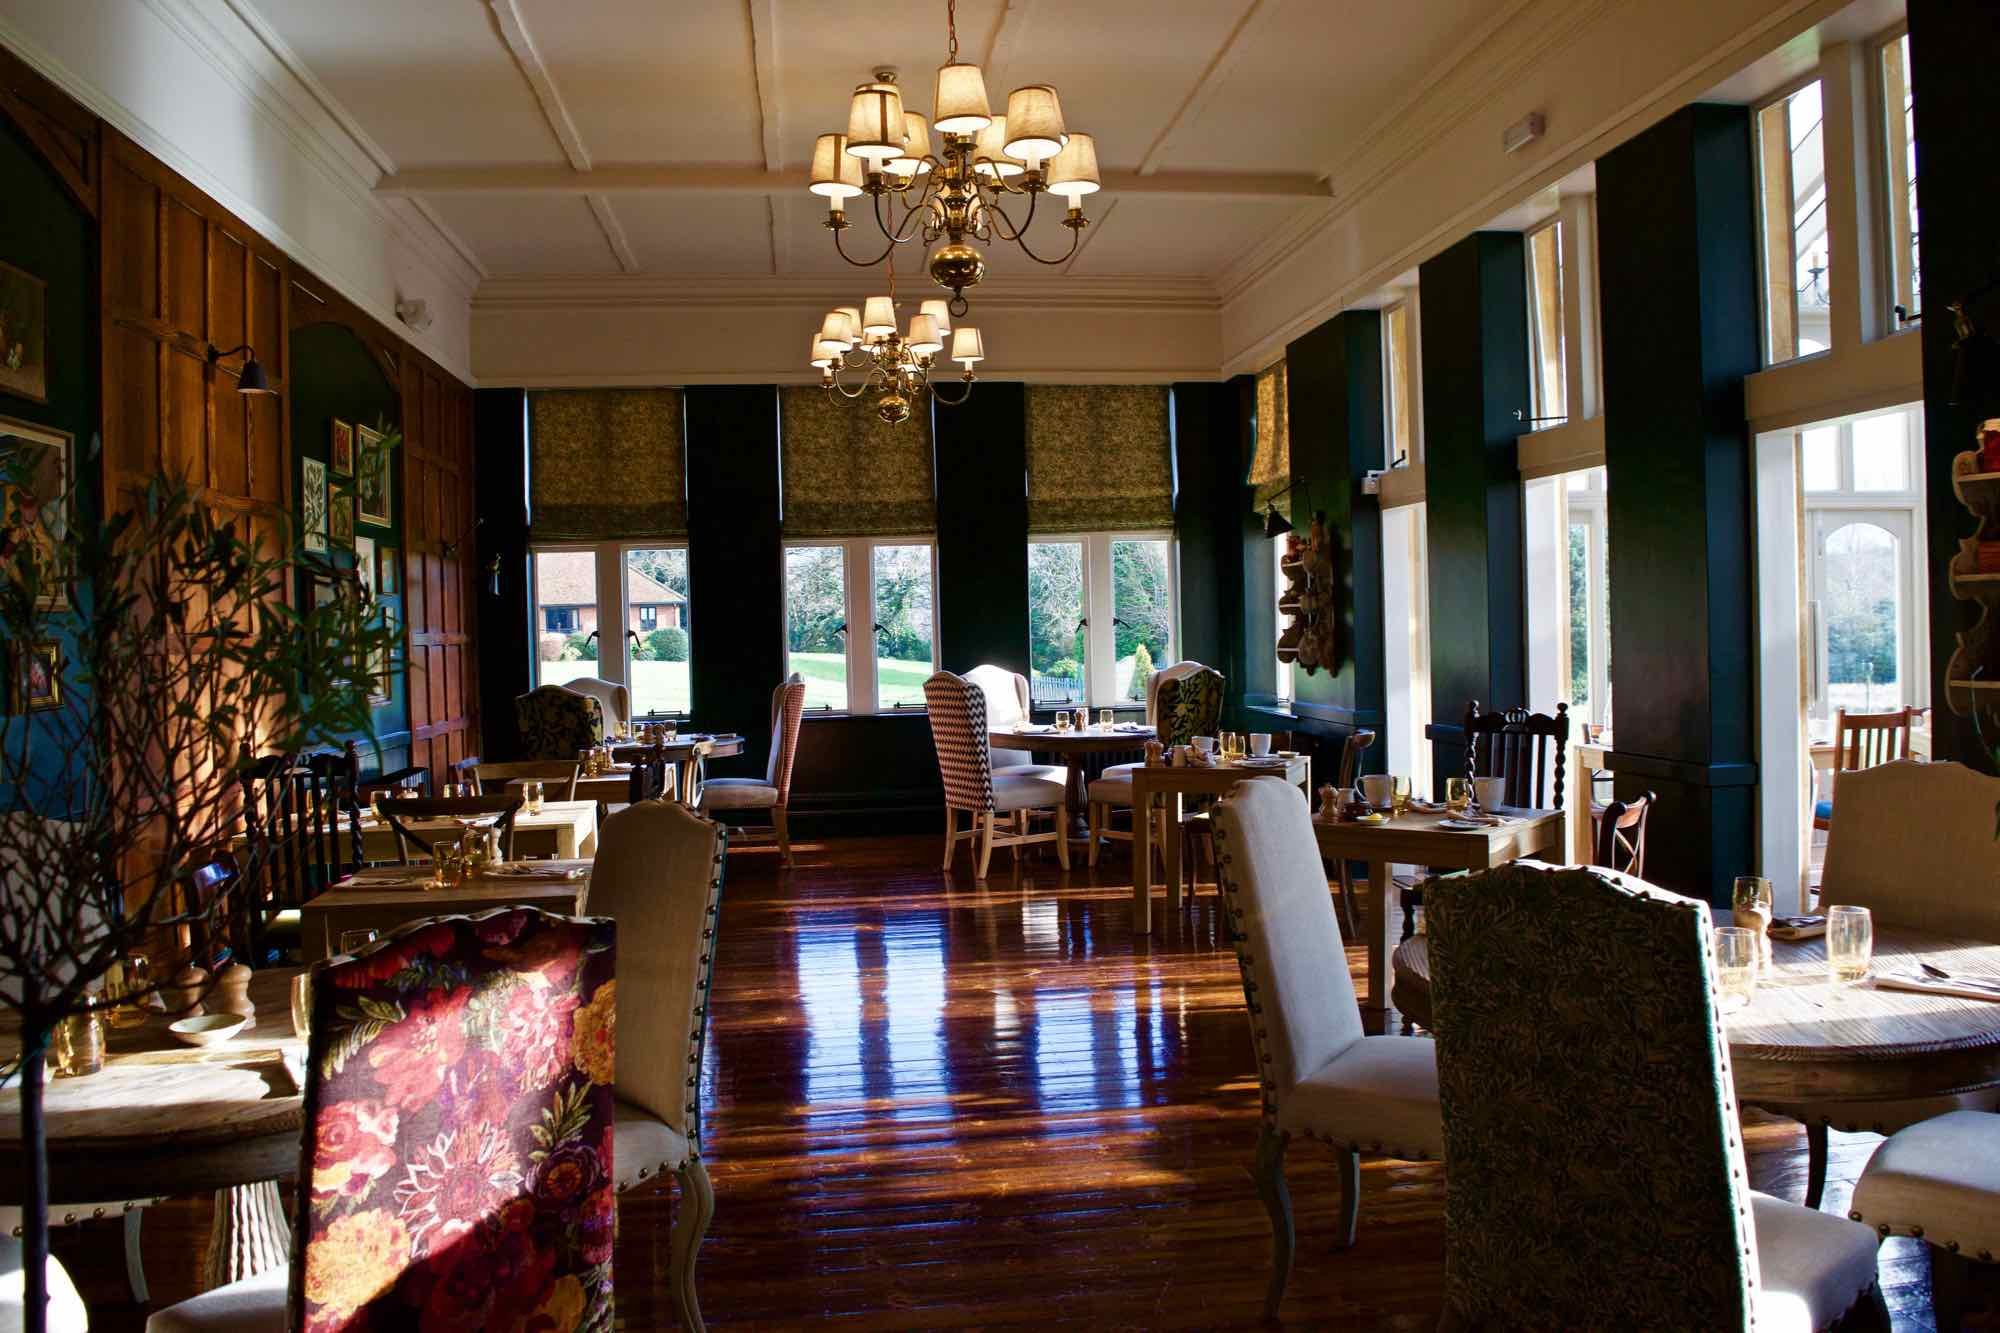 Dining Room at Burley Manor Hotel, New Forest